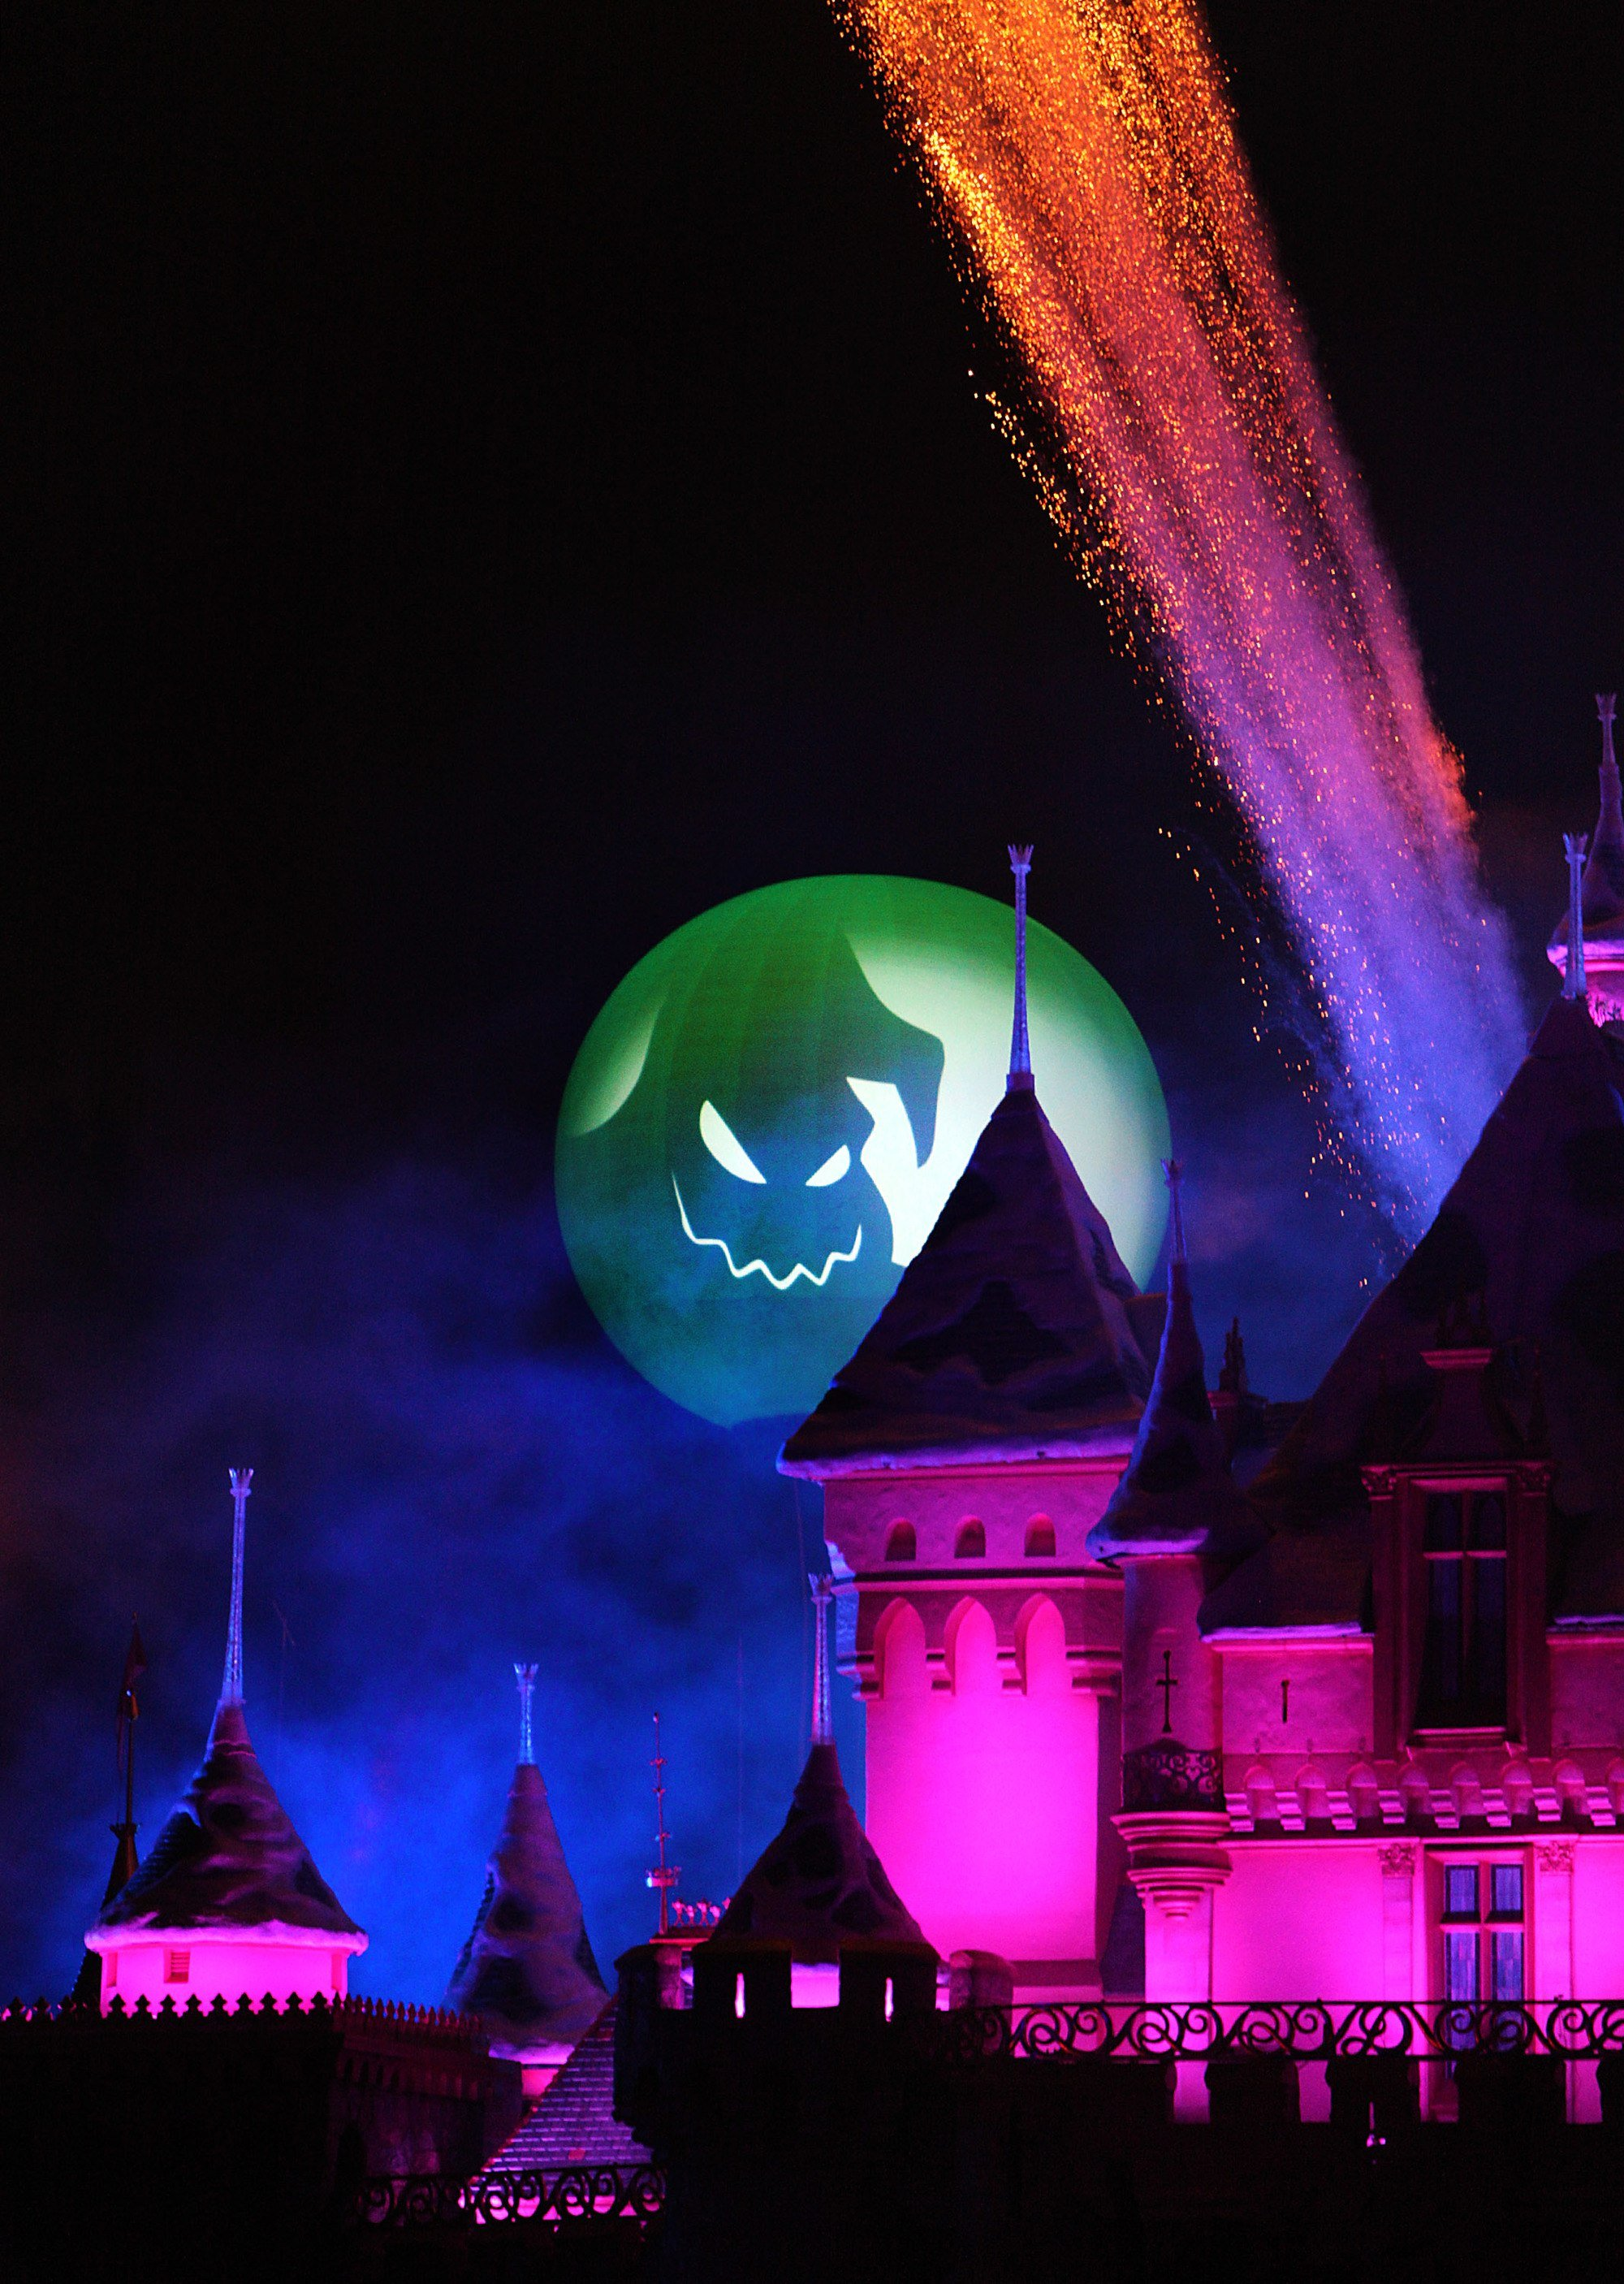 Halloween Screams-A Villainous Surprise in the Skies fireworks spectacular above Cinderella's Castle all lit up for Halloween at Mickey's Halloween Party with Kids